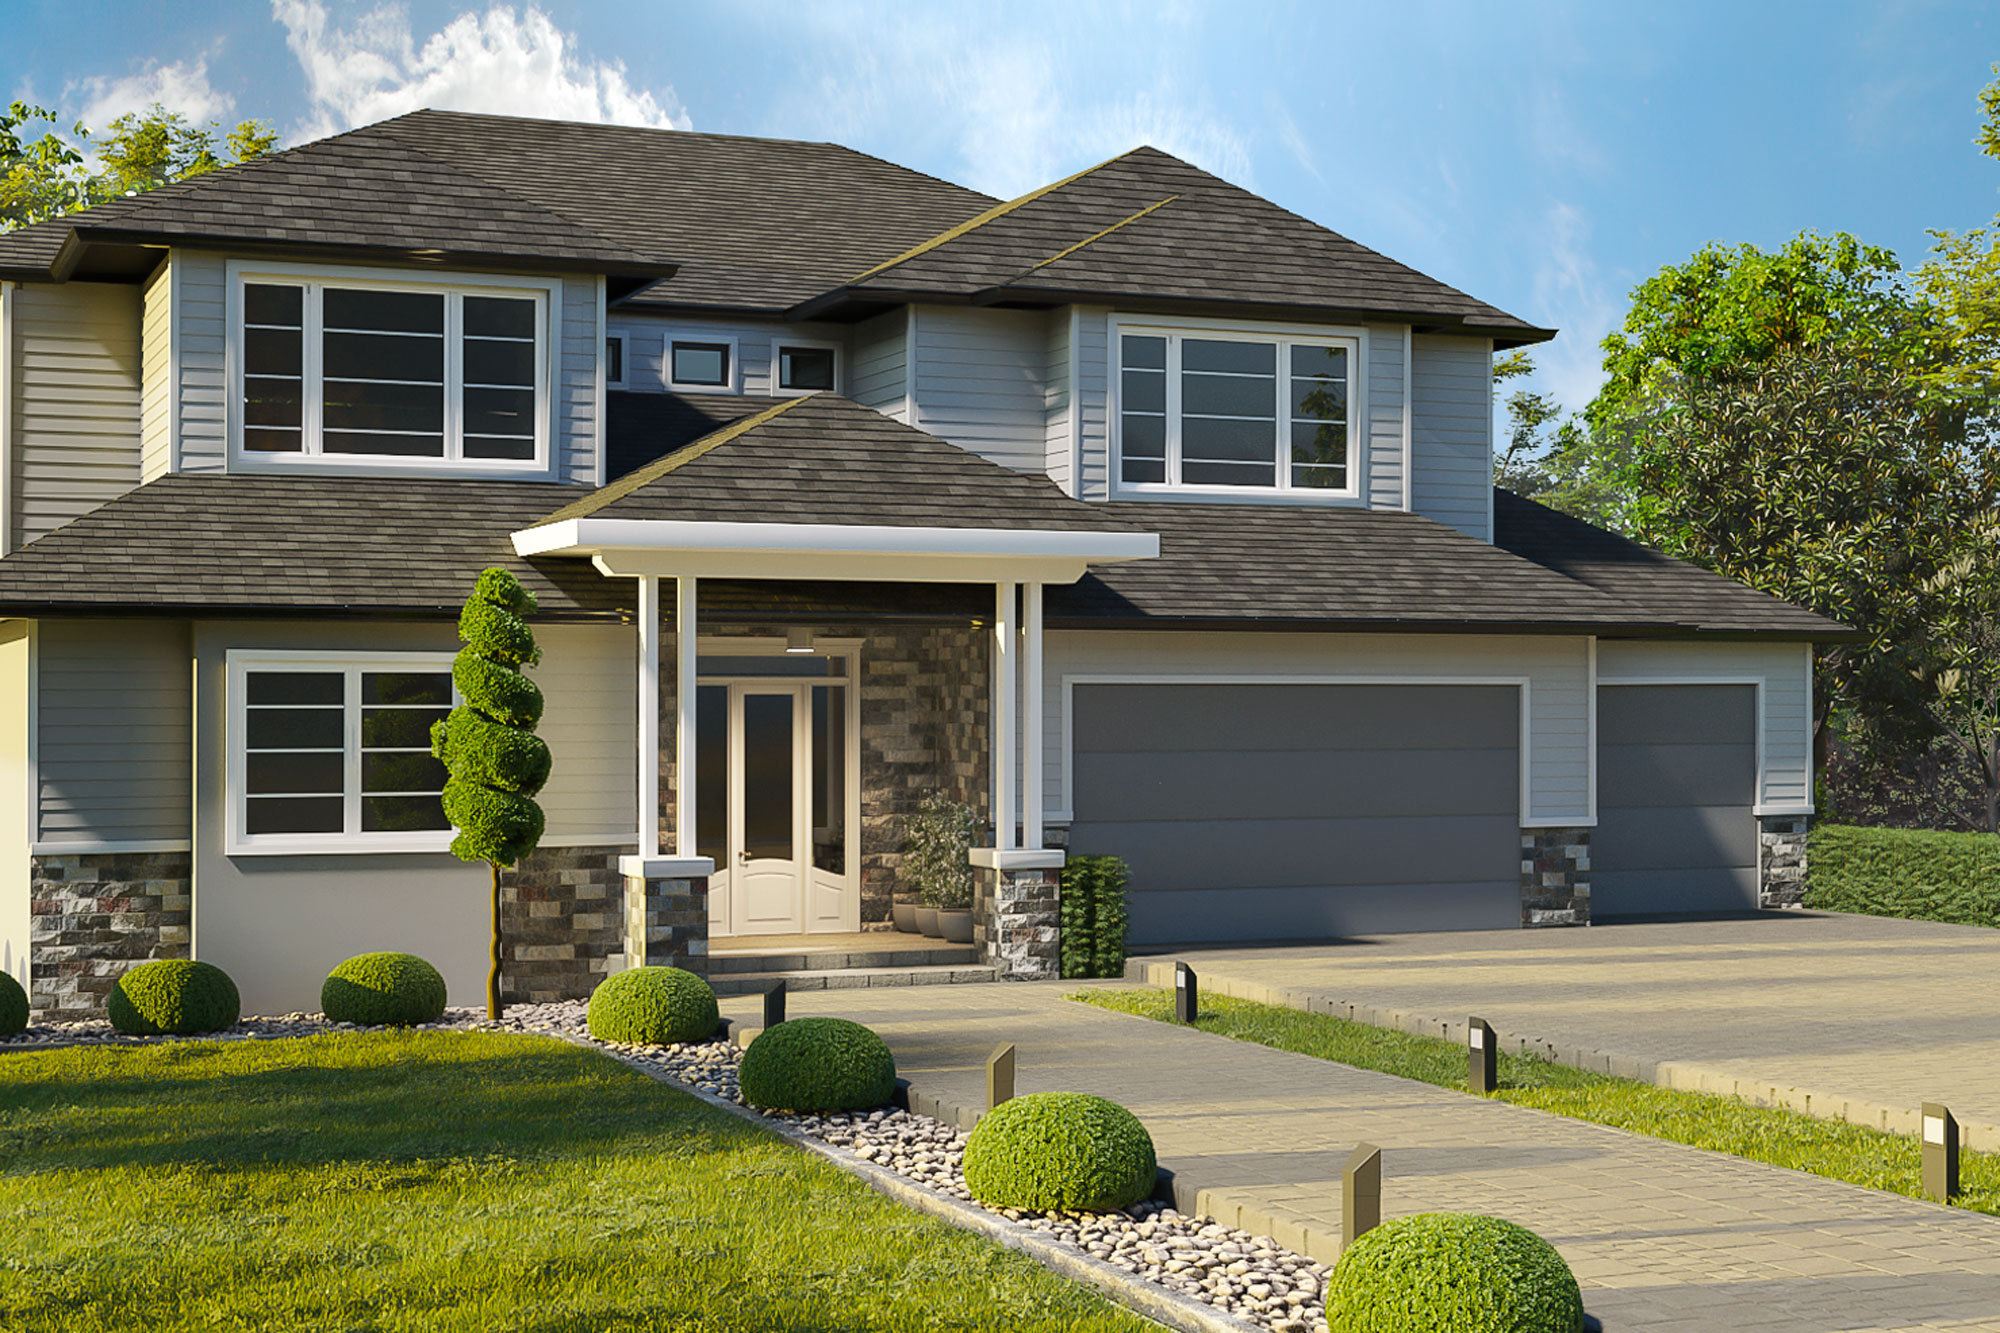 Architectural-Rendering servicers in UK